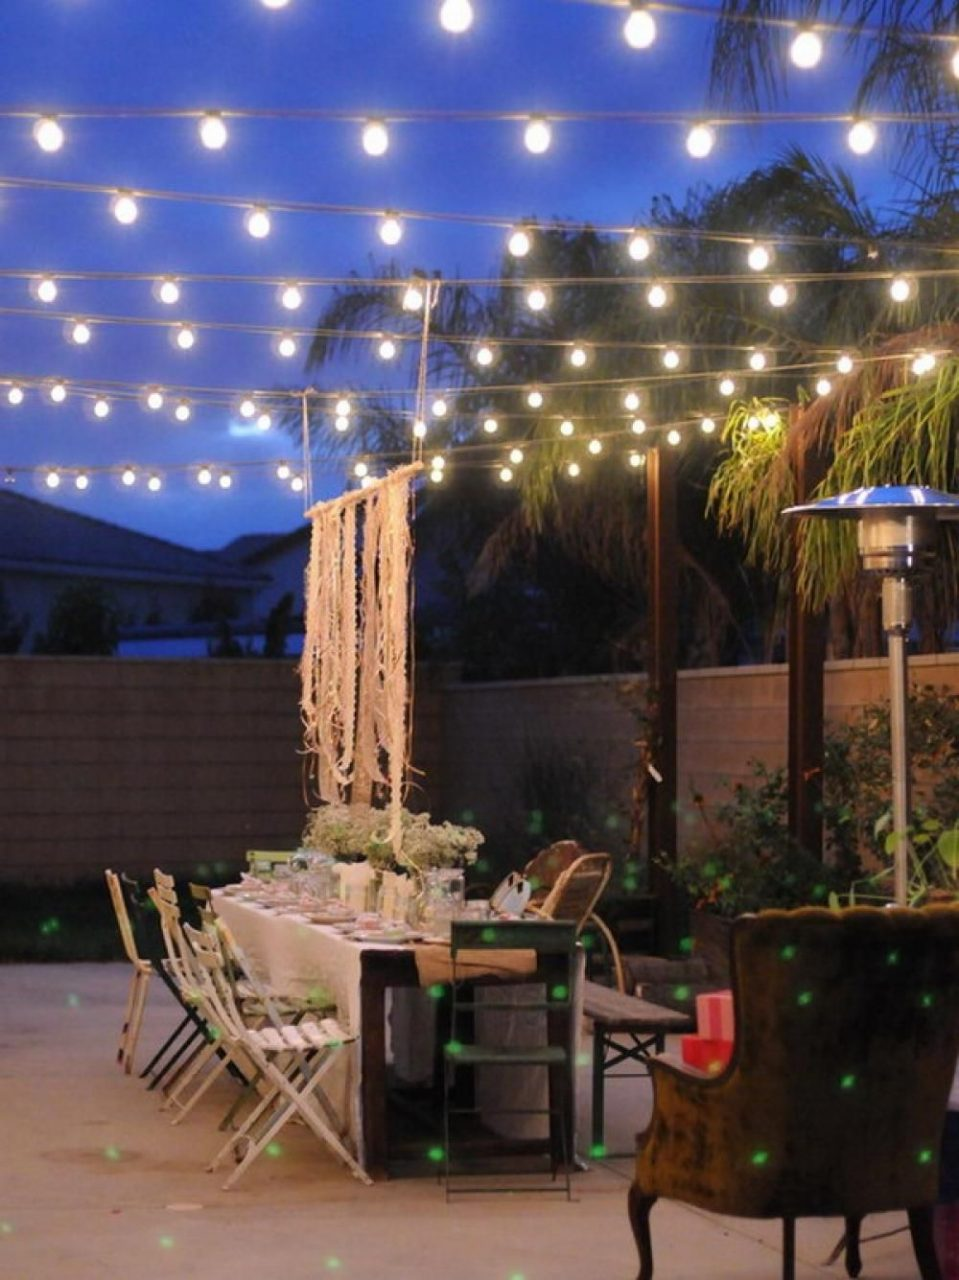 Marvelous Patio Lighting String Patio String Lights Outdoor Patio